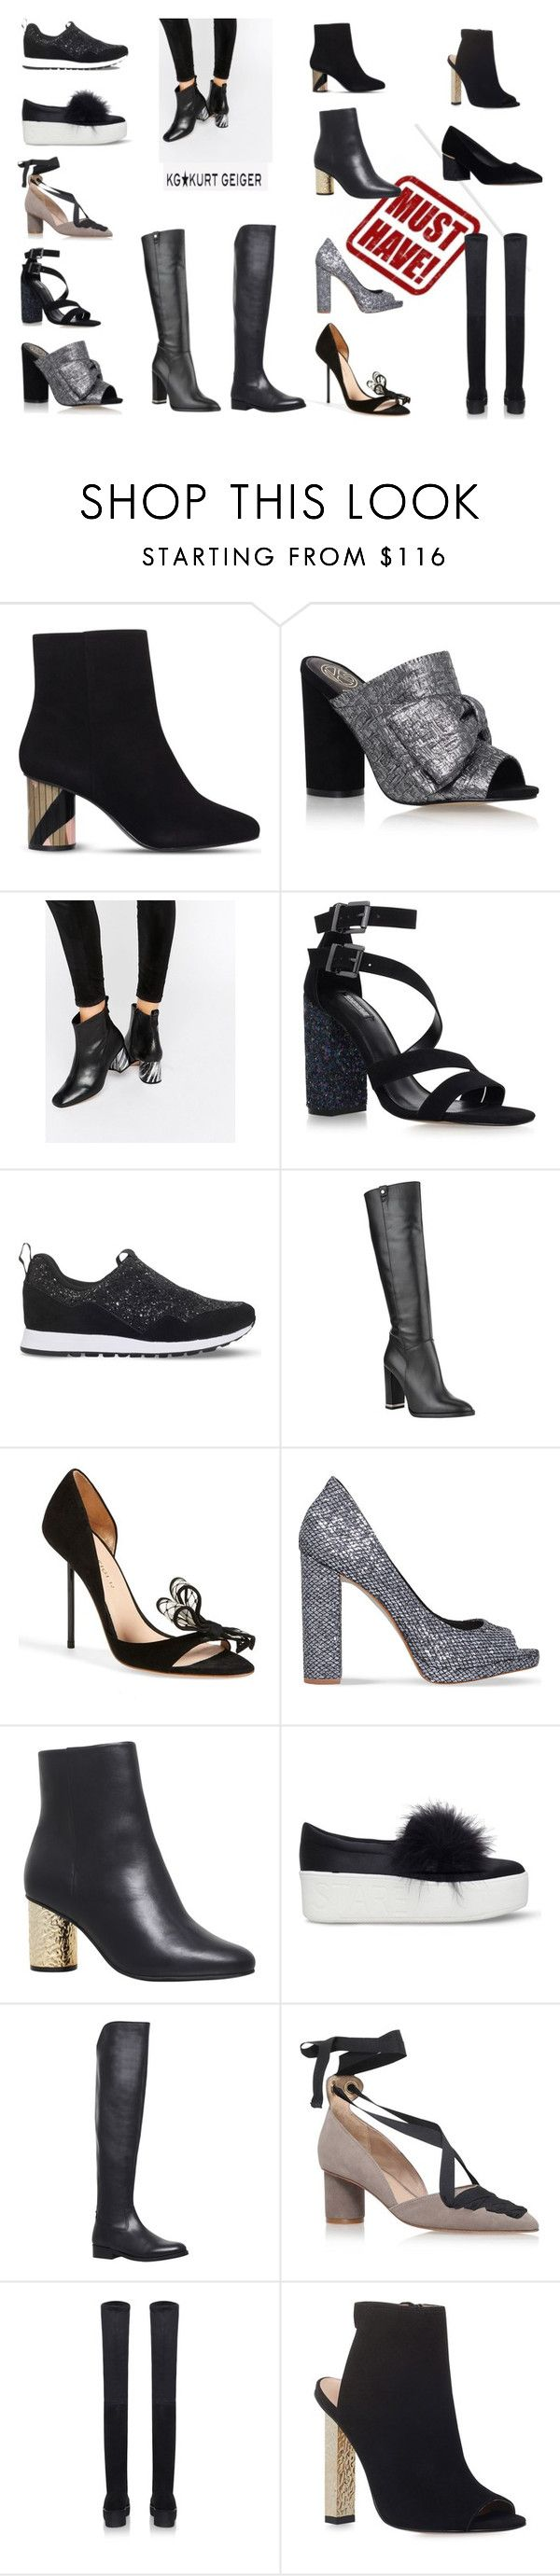 """Kurt Geiger shoes"" by christina-mos ❤ liked on Polyvore featuring Kurt Geiger, KG Kurt Geiger and Carvela Kurt Geiger"